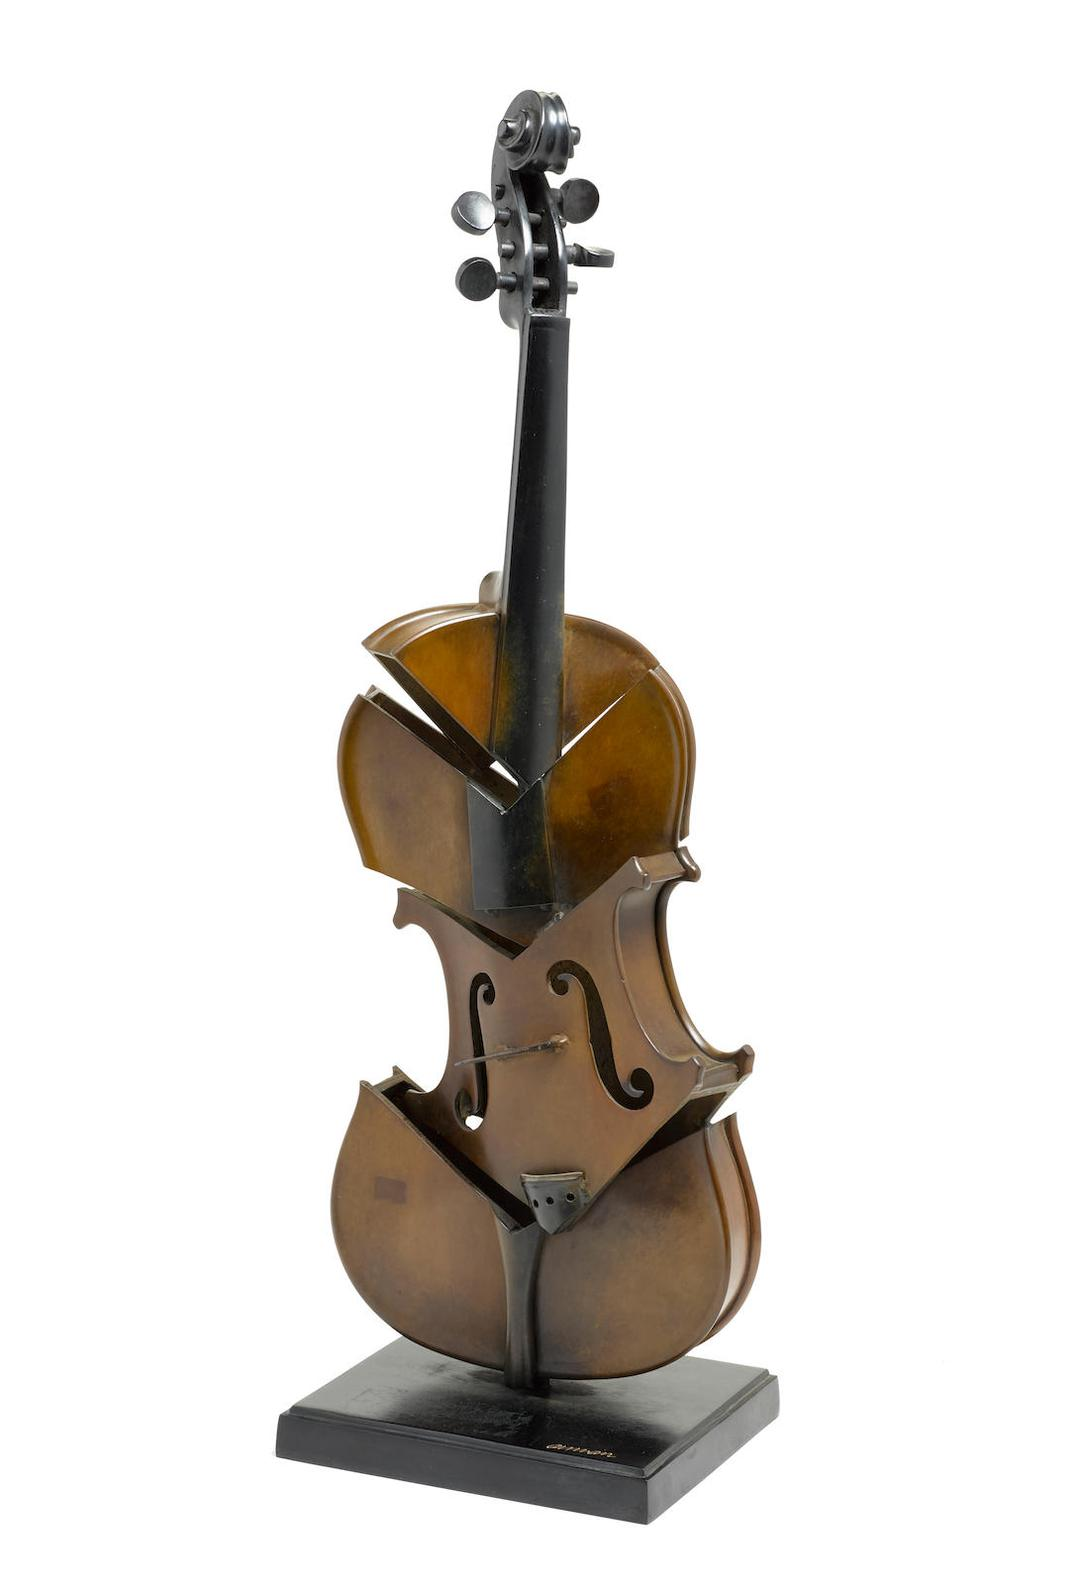 Arman-Violon Coupe II (Hommage A Picasso)-2004